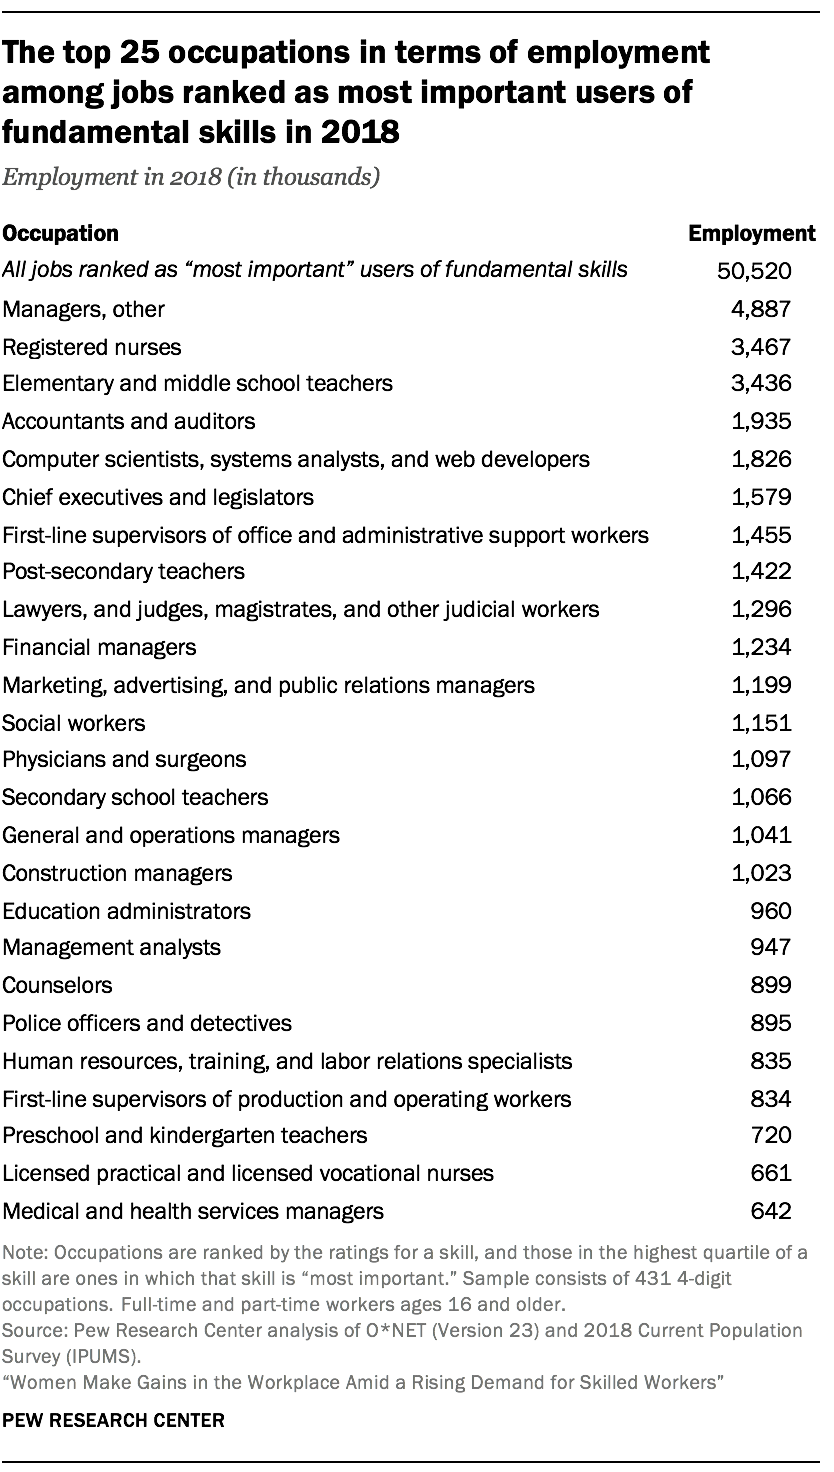 The top 25 occupations in terms of employment among jobs ranked as most important users of fundamental skills in 2018